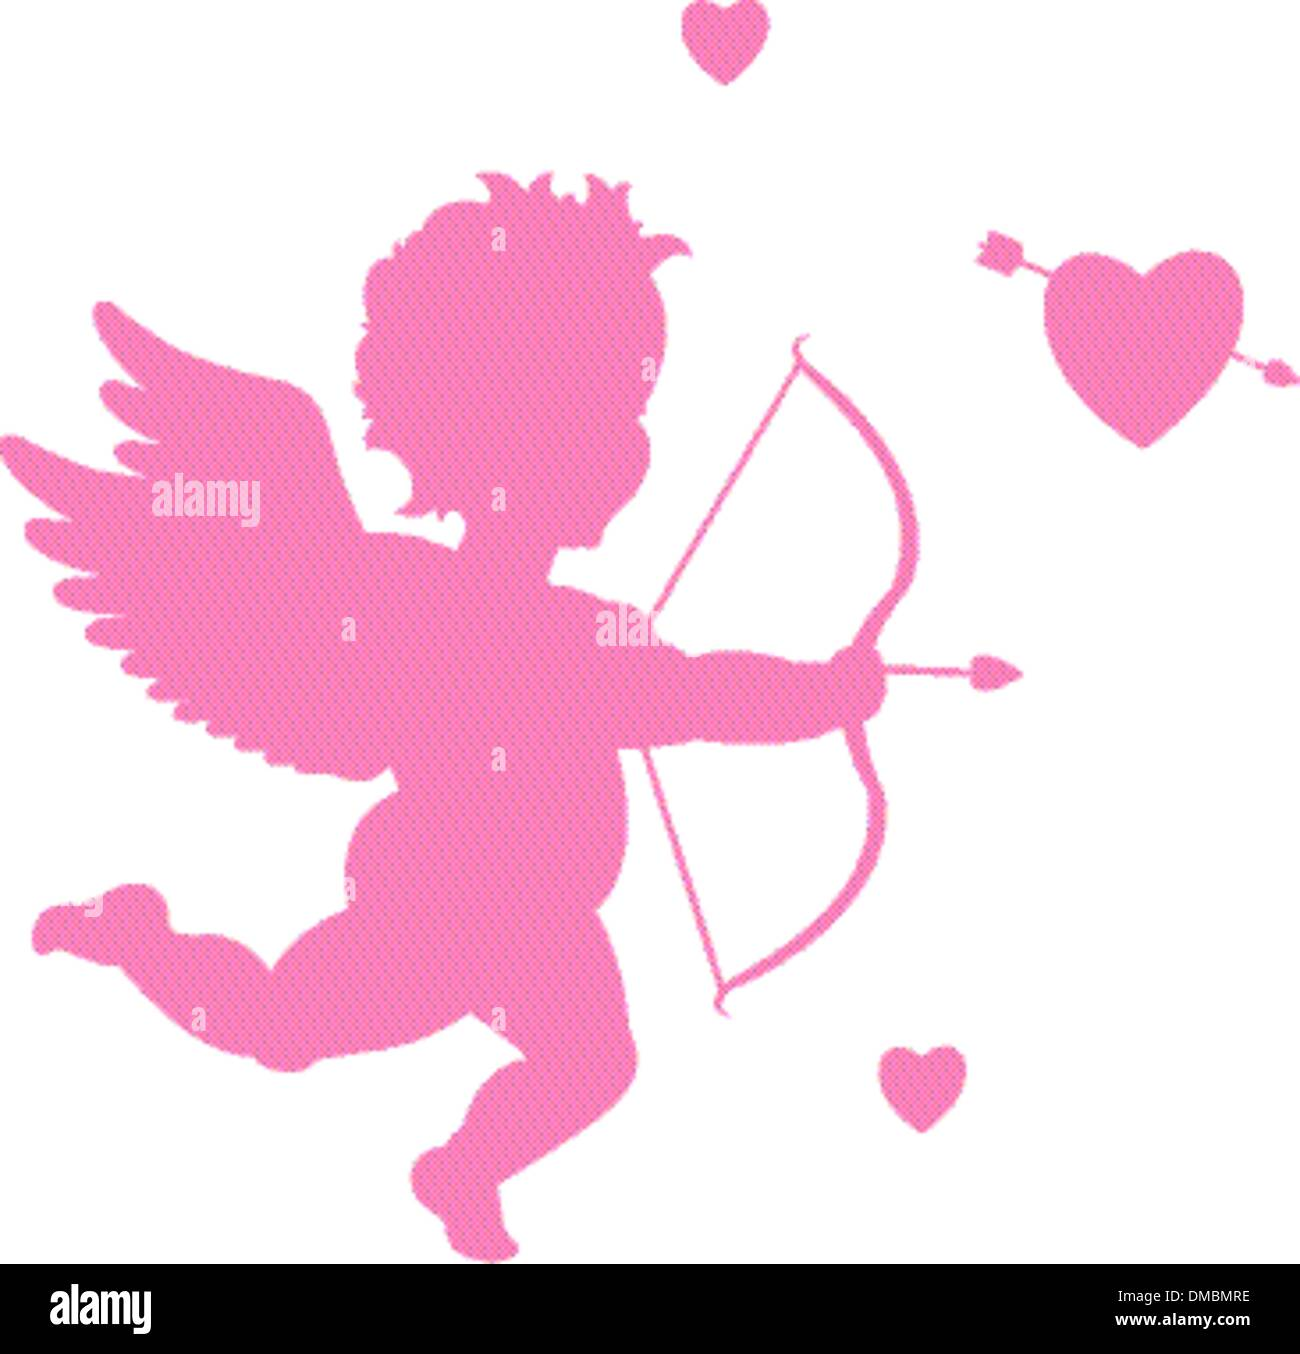 Saint-valentin Cupidon Photo Stock